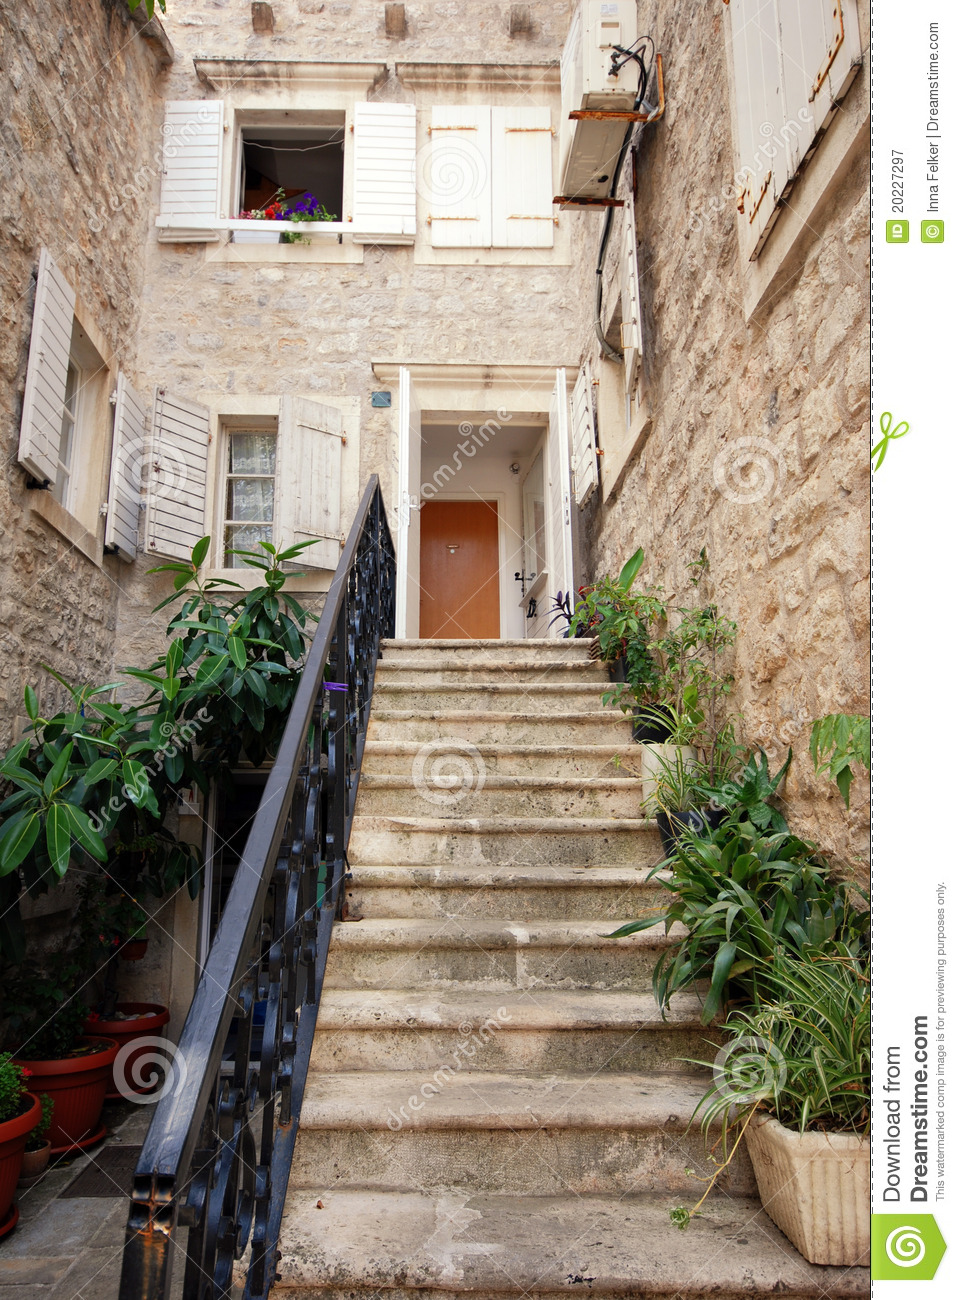 Mediterranean stone house with steps stock image image for Mediterranean stone houses